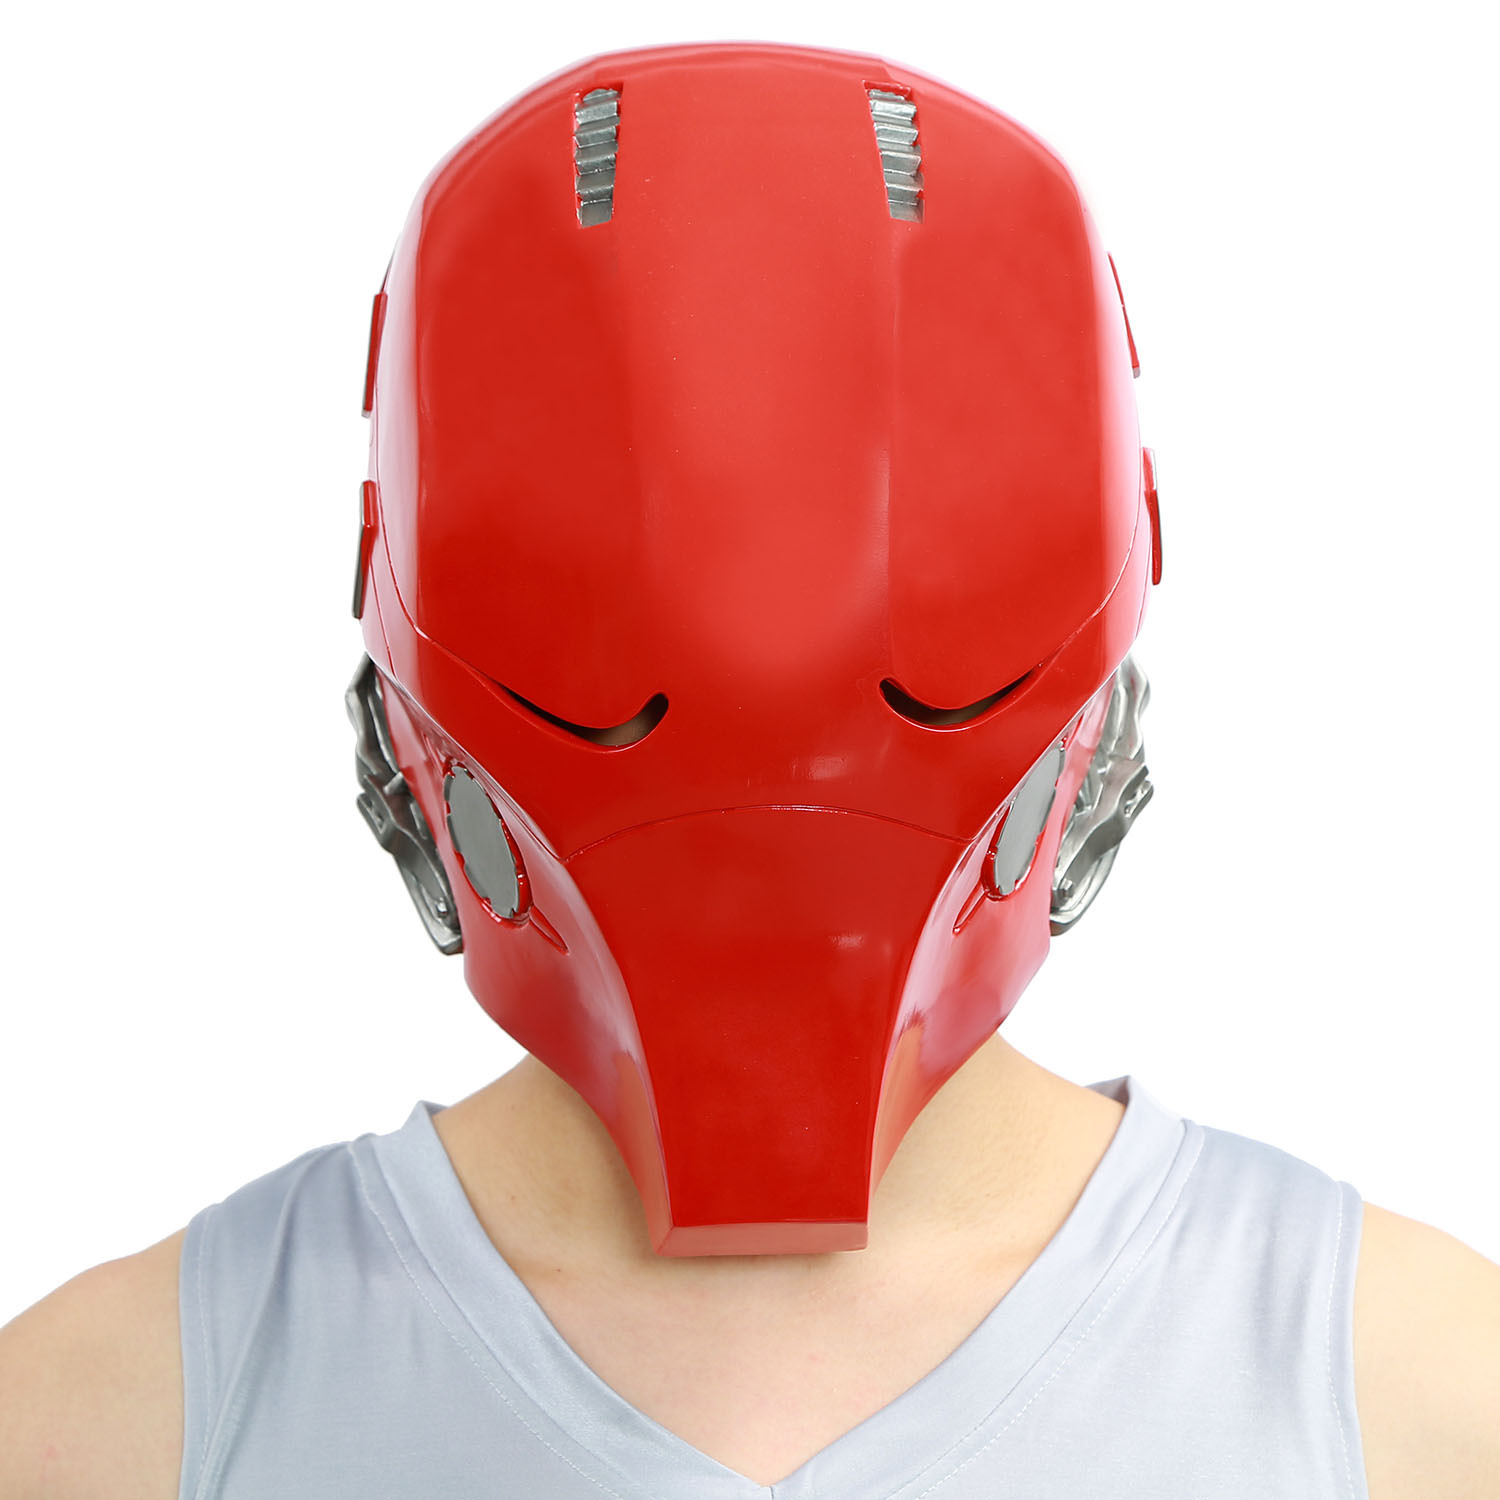 Xcoser Mask: 2 customer reviews and 39 listings